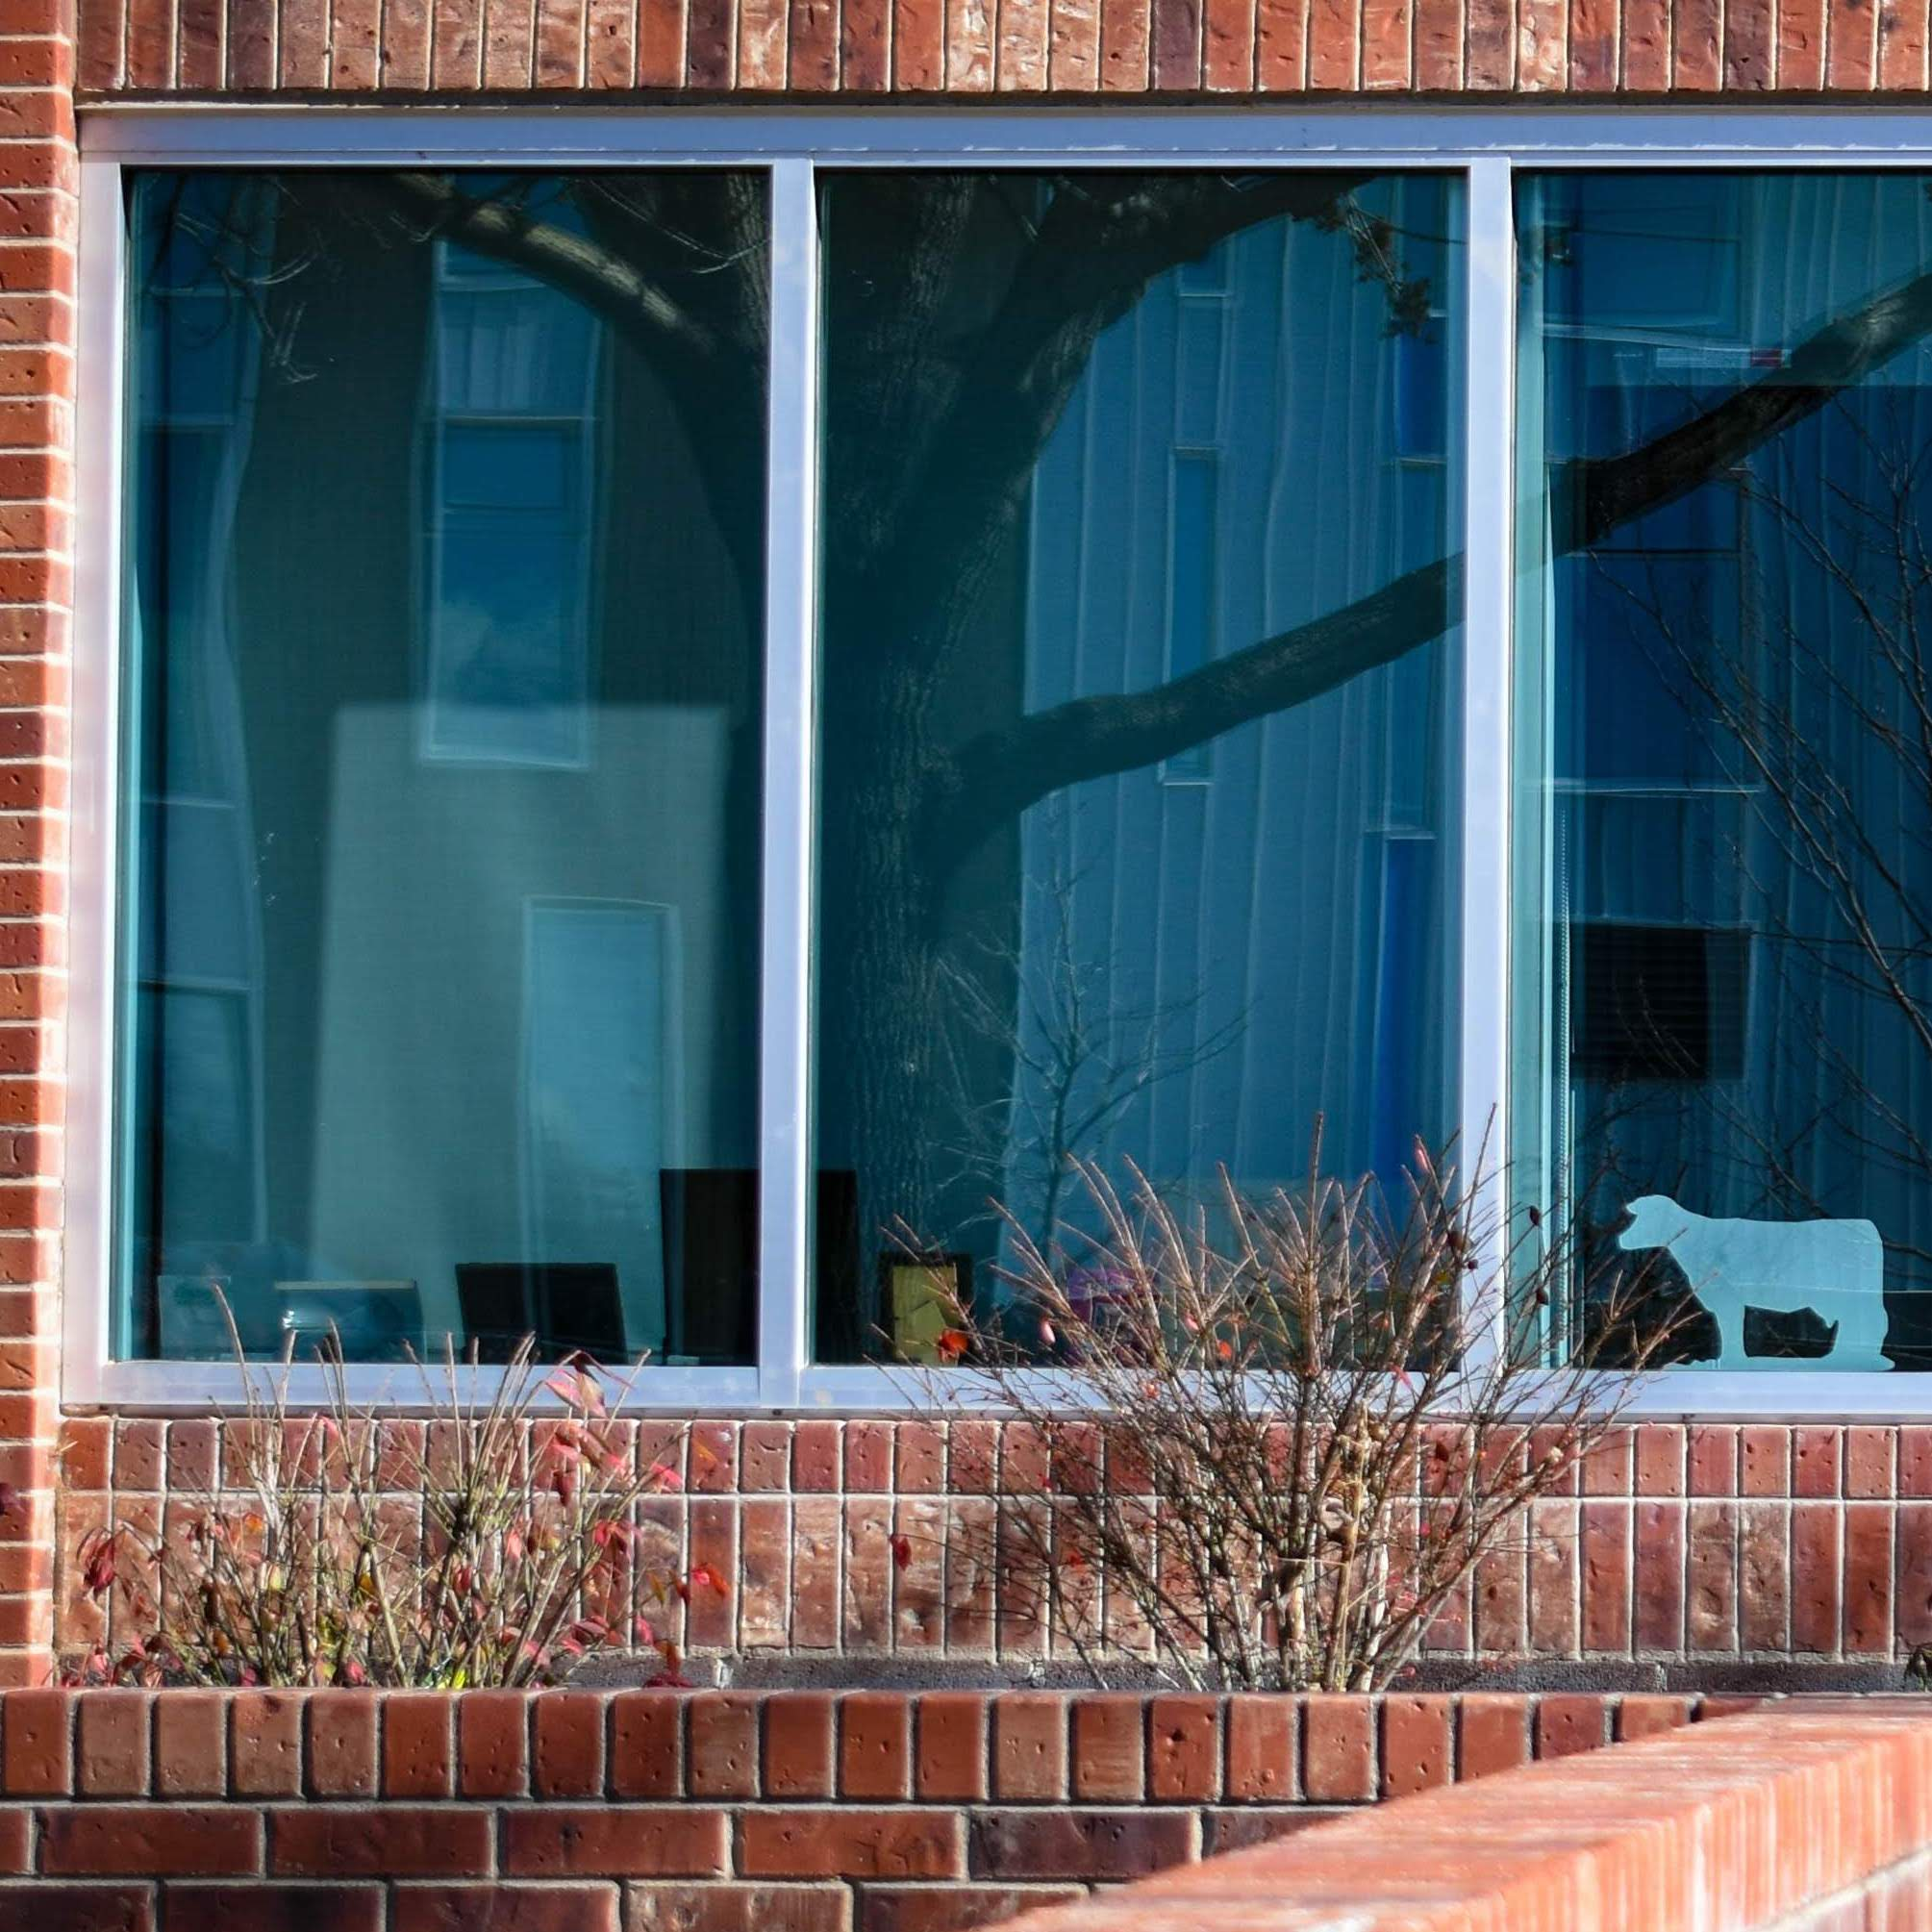 Tinted Glass - A colorant is added to clear glass to give it a tint. The tinting increases protection from sun exposure and enhances thermal efficiency. Common shades are bronze and gray, with gray being slightly more thermally efficient.